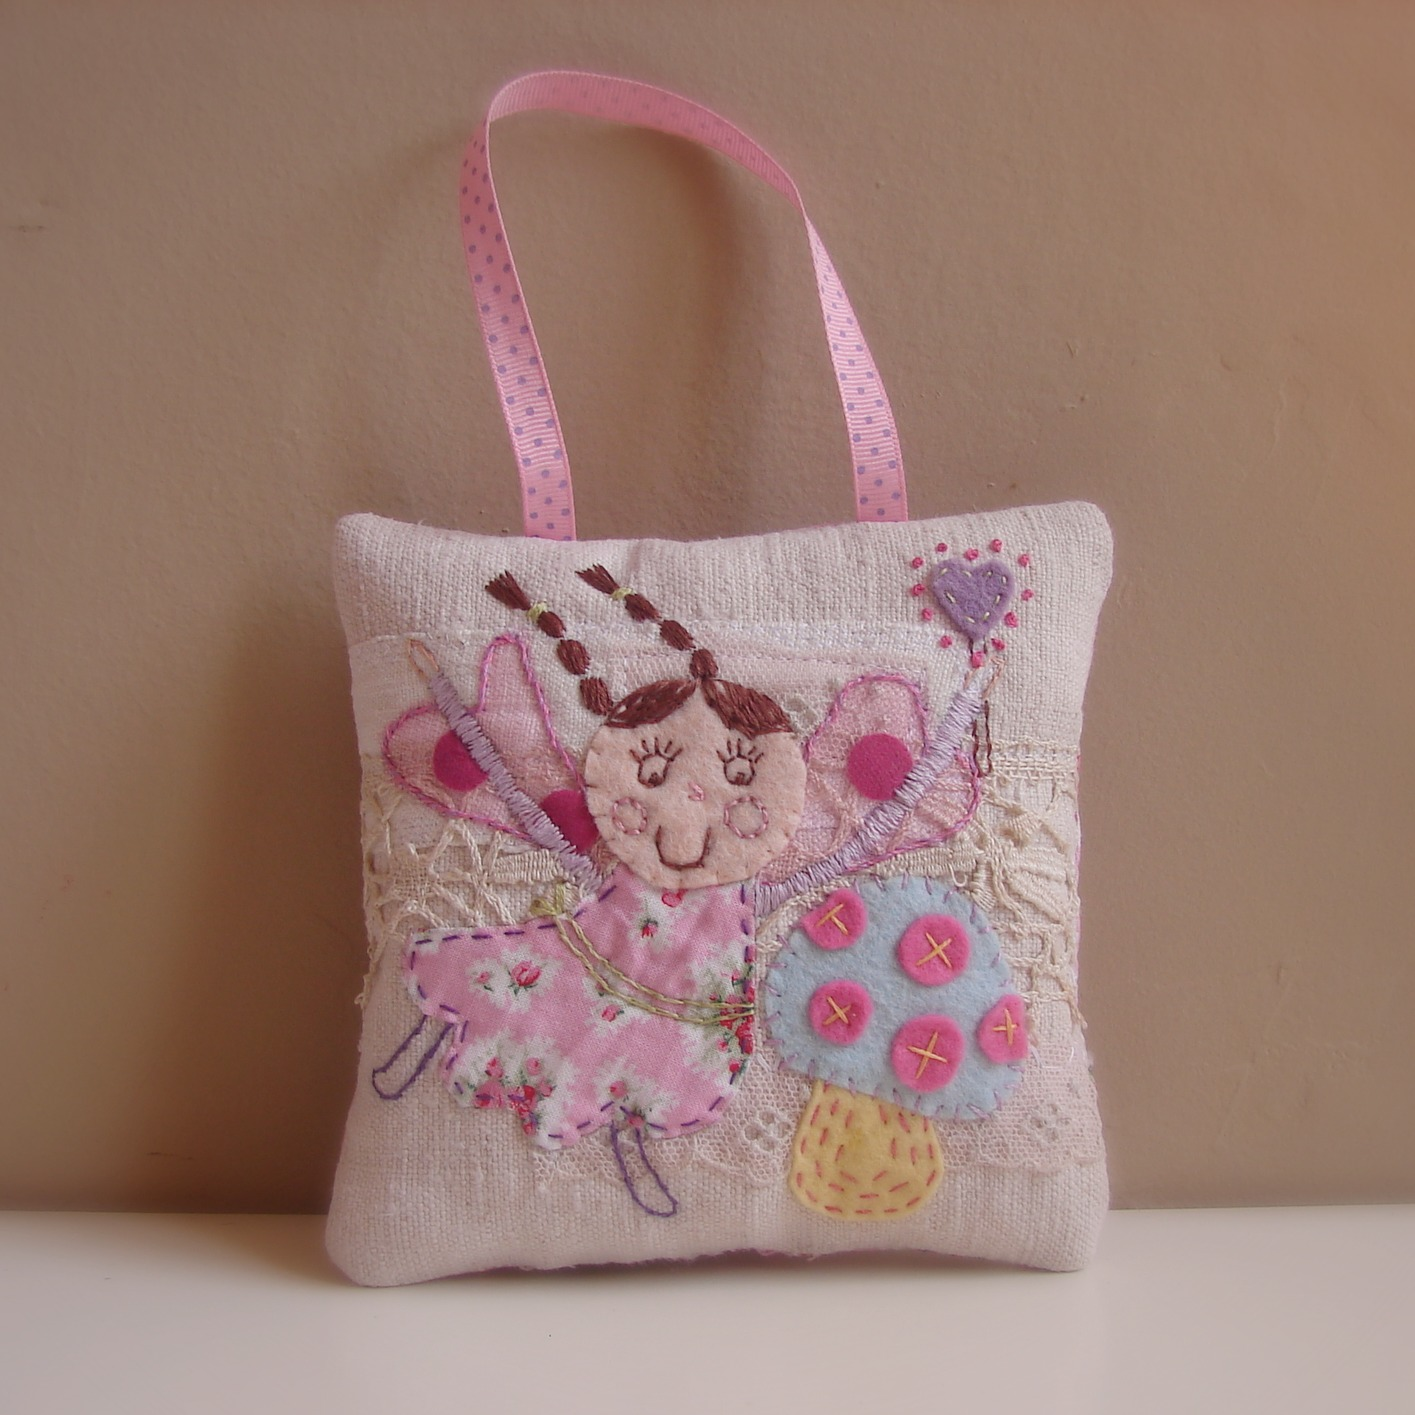 Roxy Creations: Tooth fairy pillow